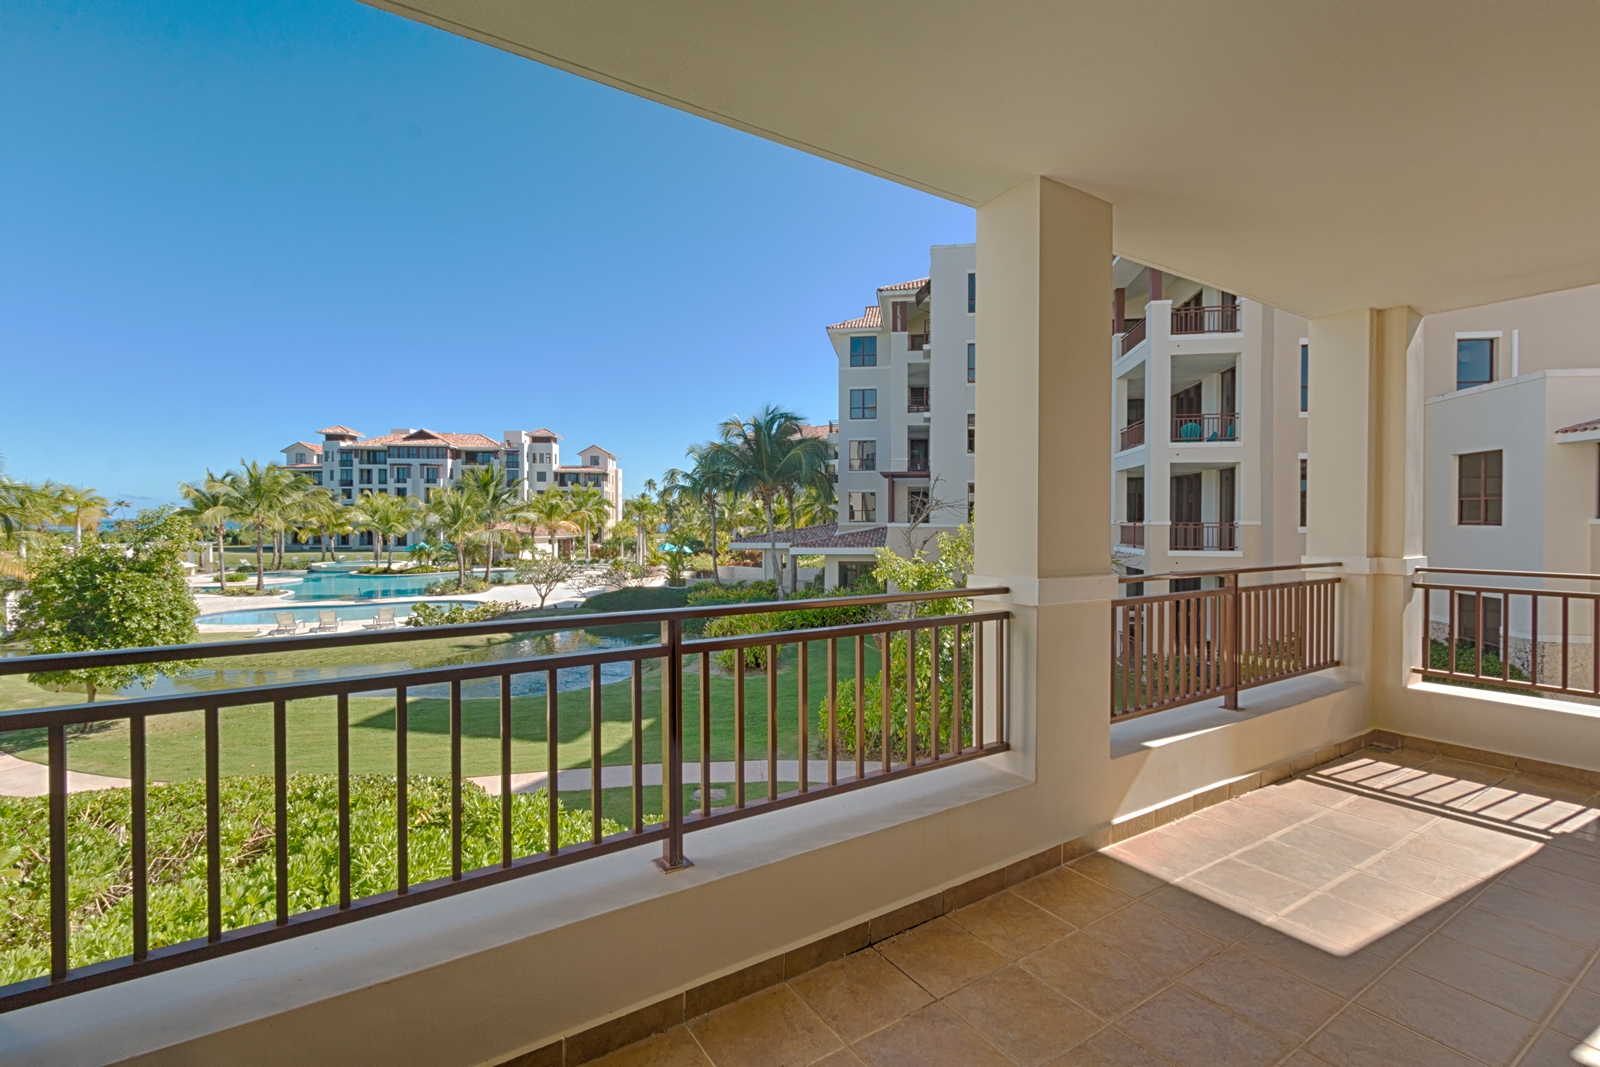 Condominium for Sale at Residence 124 at 238 Candelero Drive 238 Candelero Drive, Apt 124 Solarea Beach Resort and Yacht Club, Palmas Del Mar, 00791 Puerto Rico